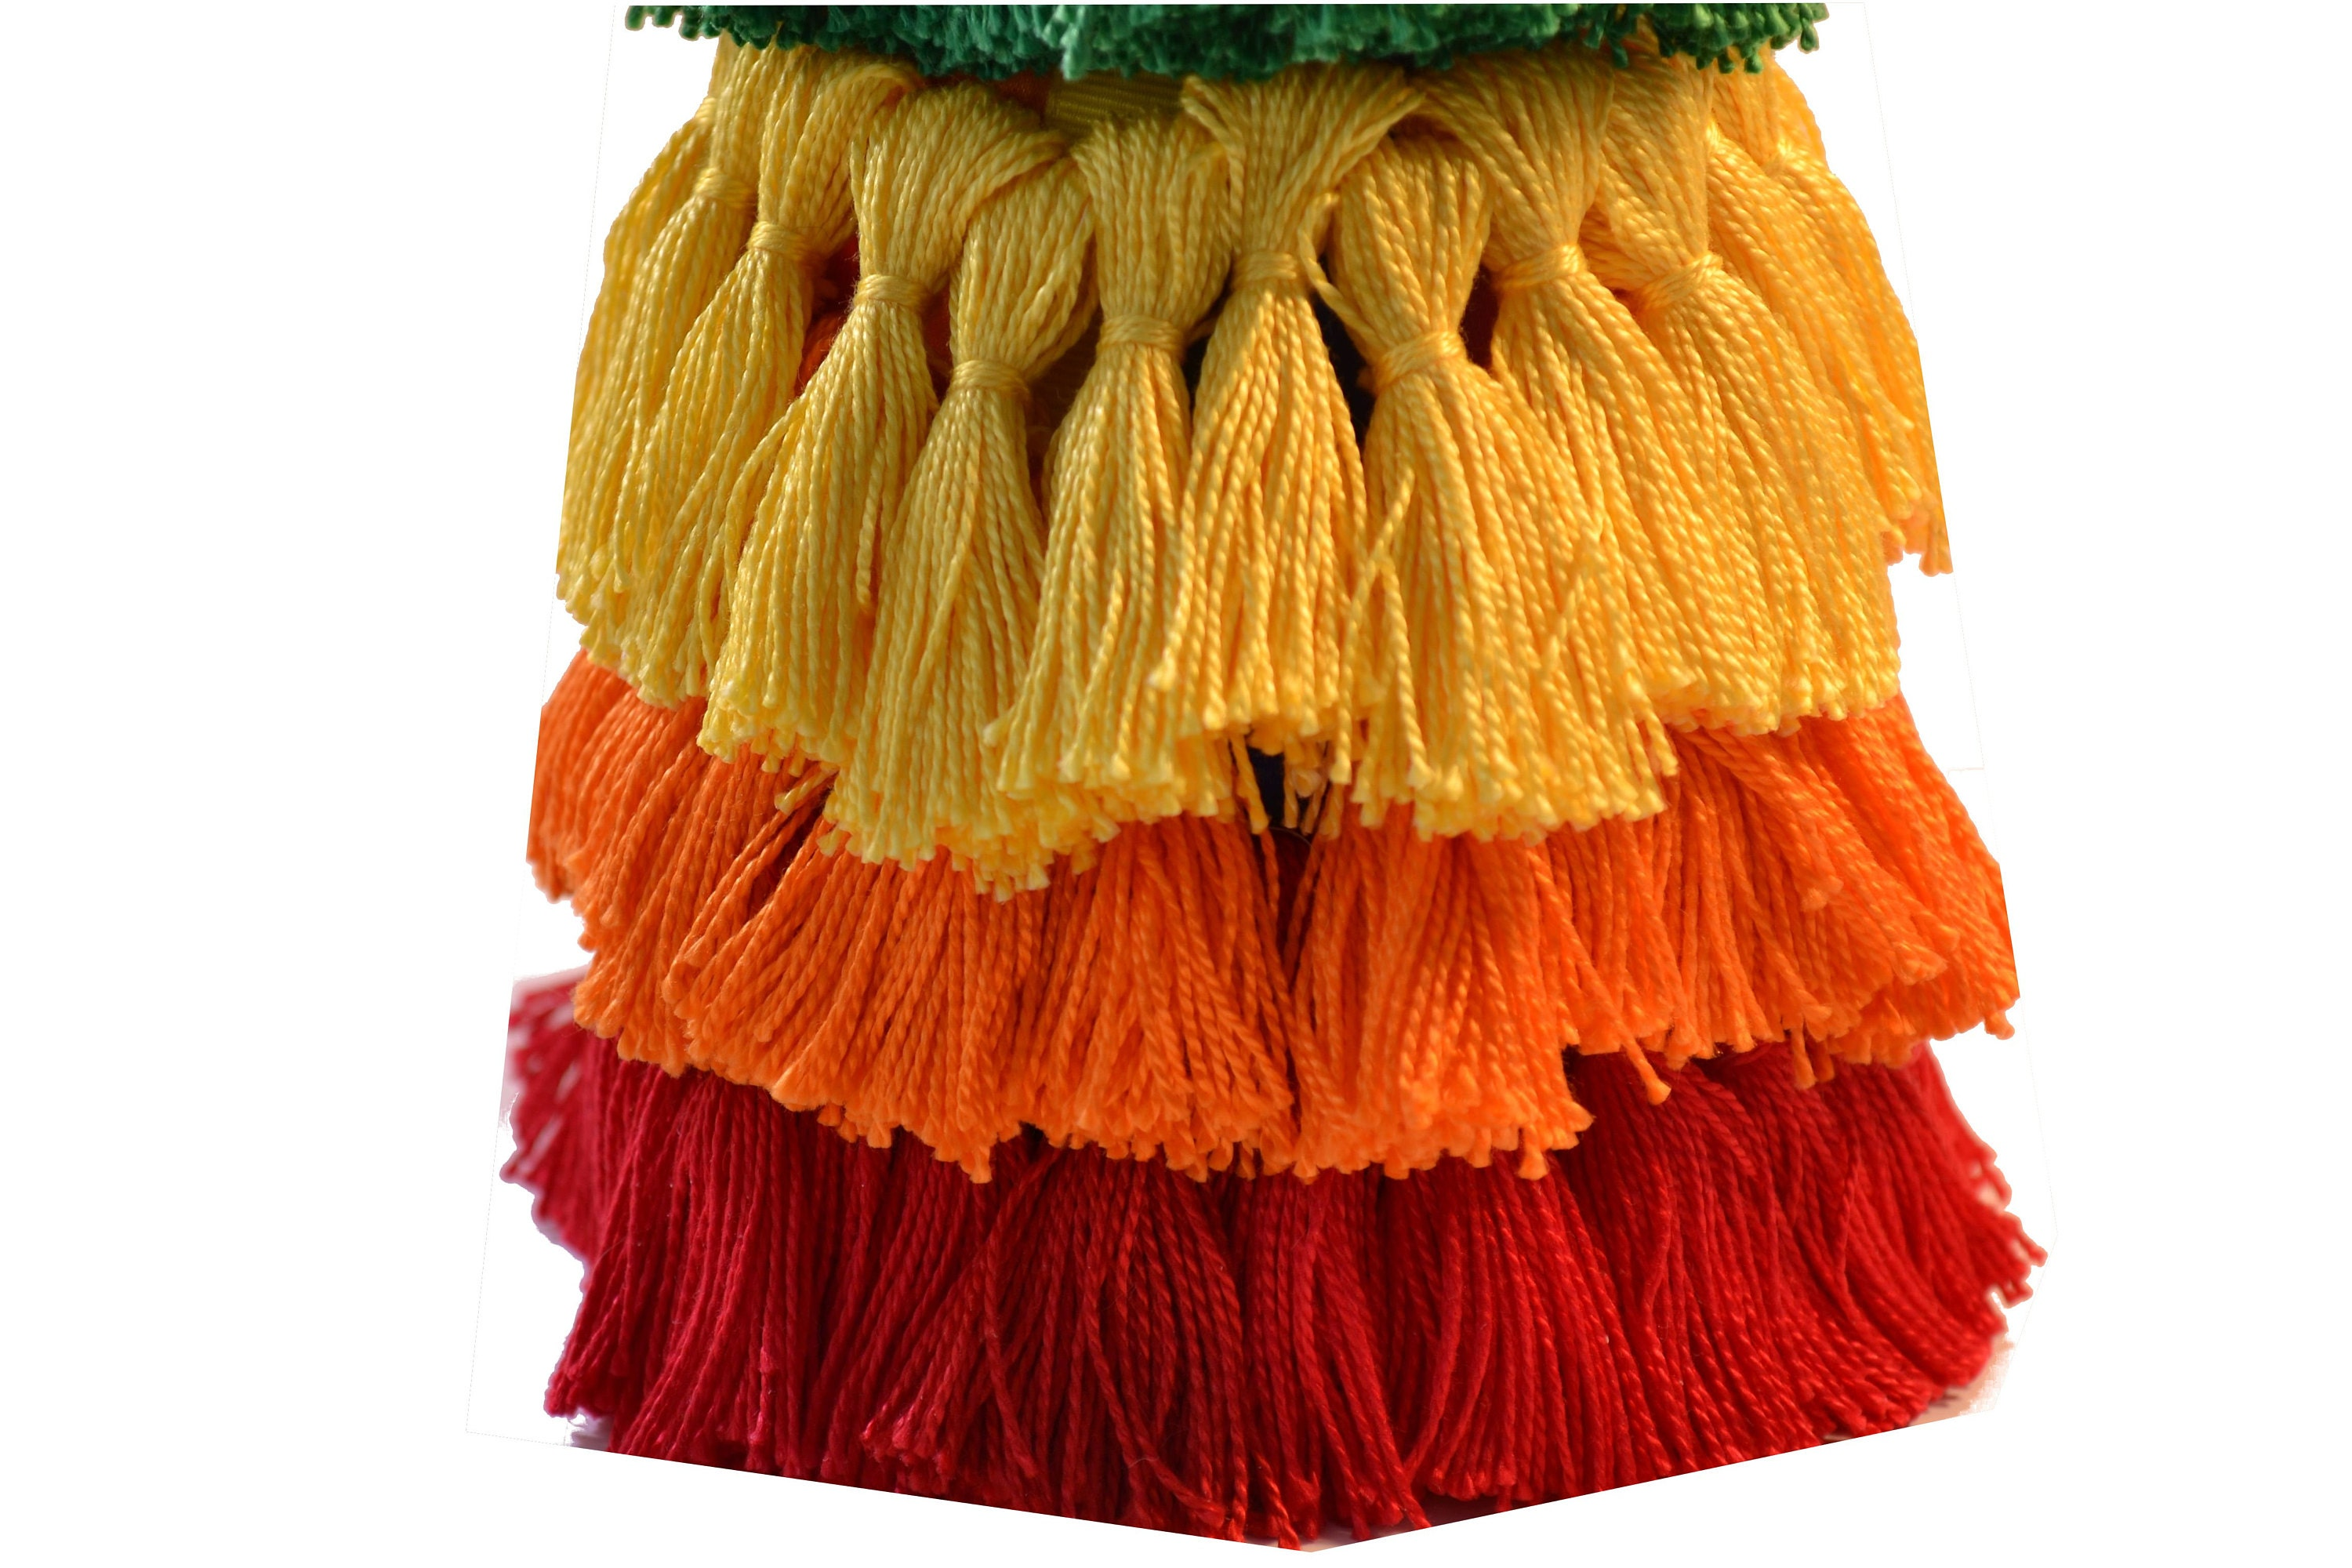 Rows of bright tassels, red, orange, yellow